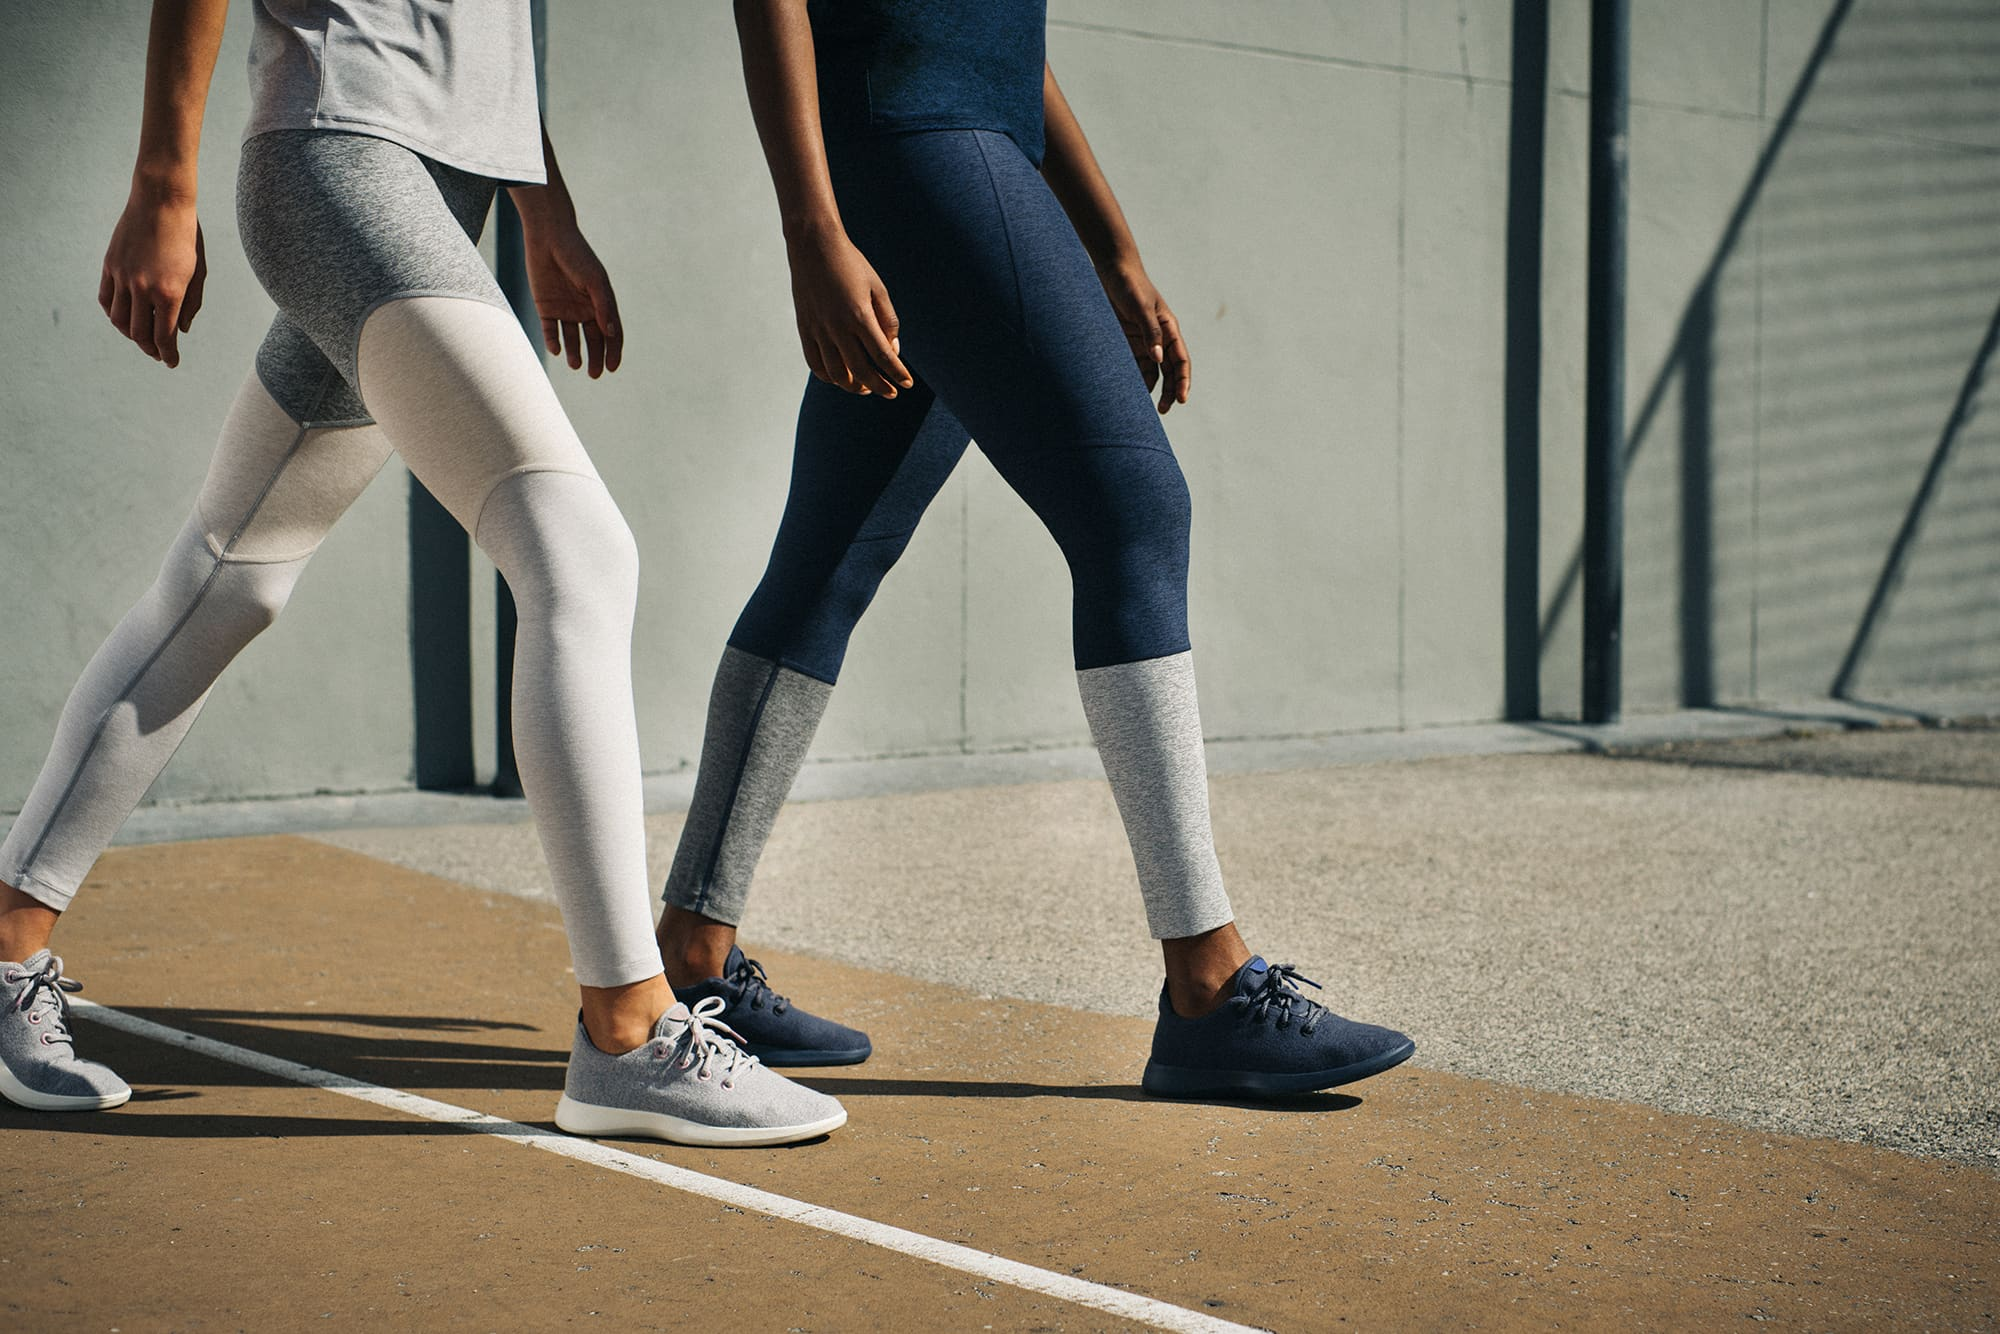 New Zealand shoe brand Allbirds has been on a tour de force for the last two years. Early bird adopters in Silicon Valley quickly catapulted the brand to international prominence.